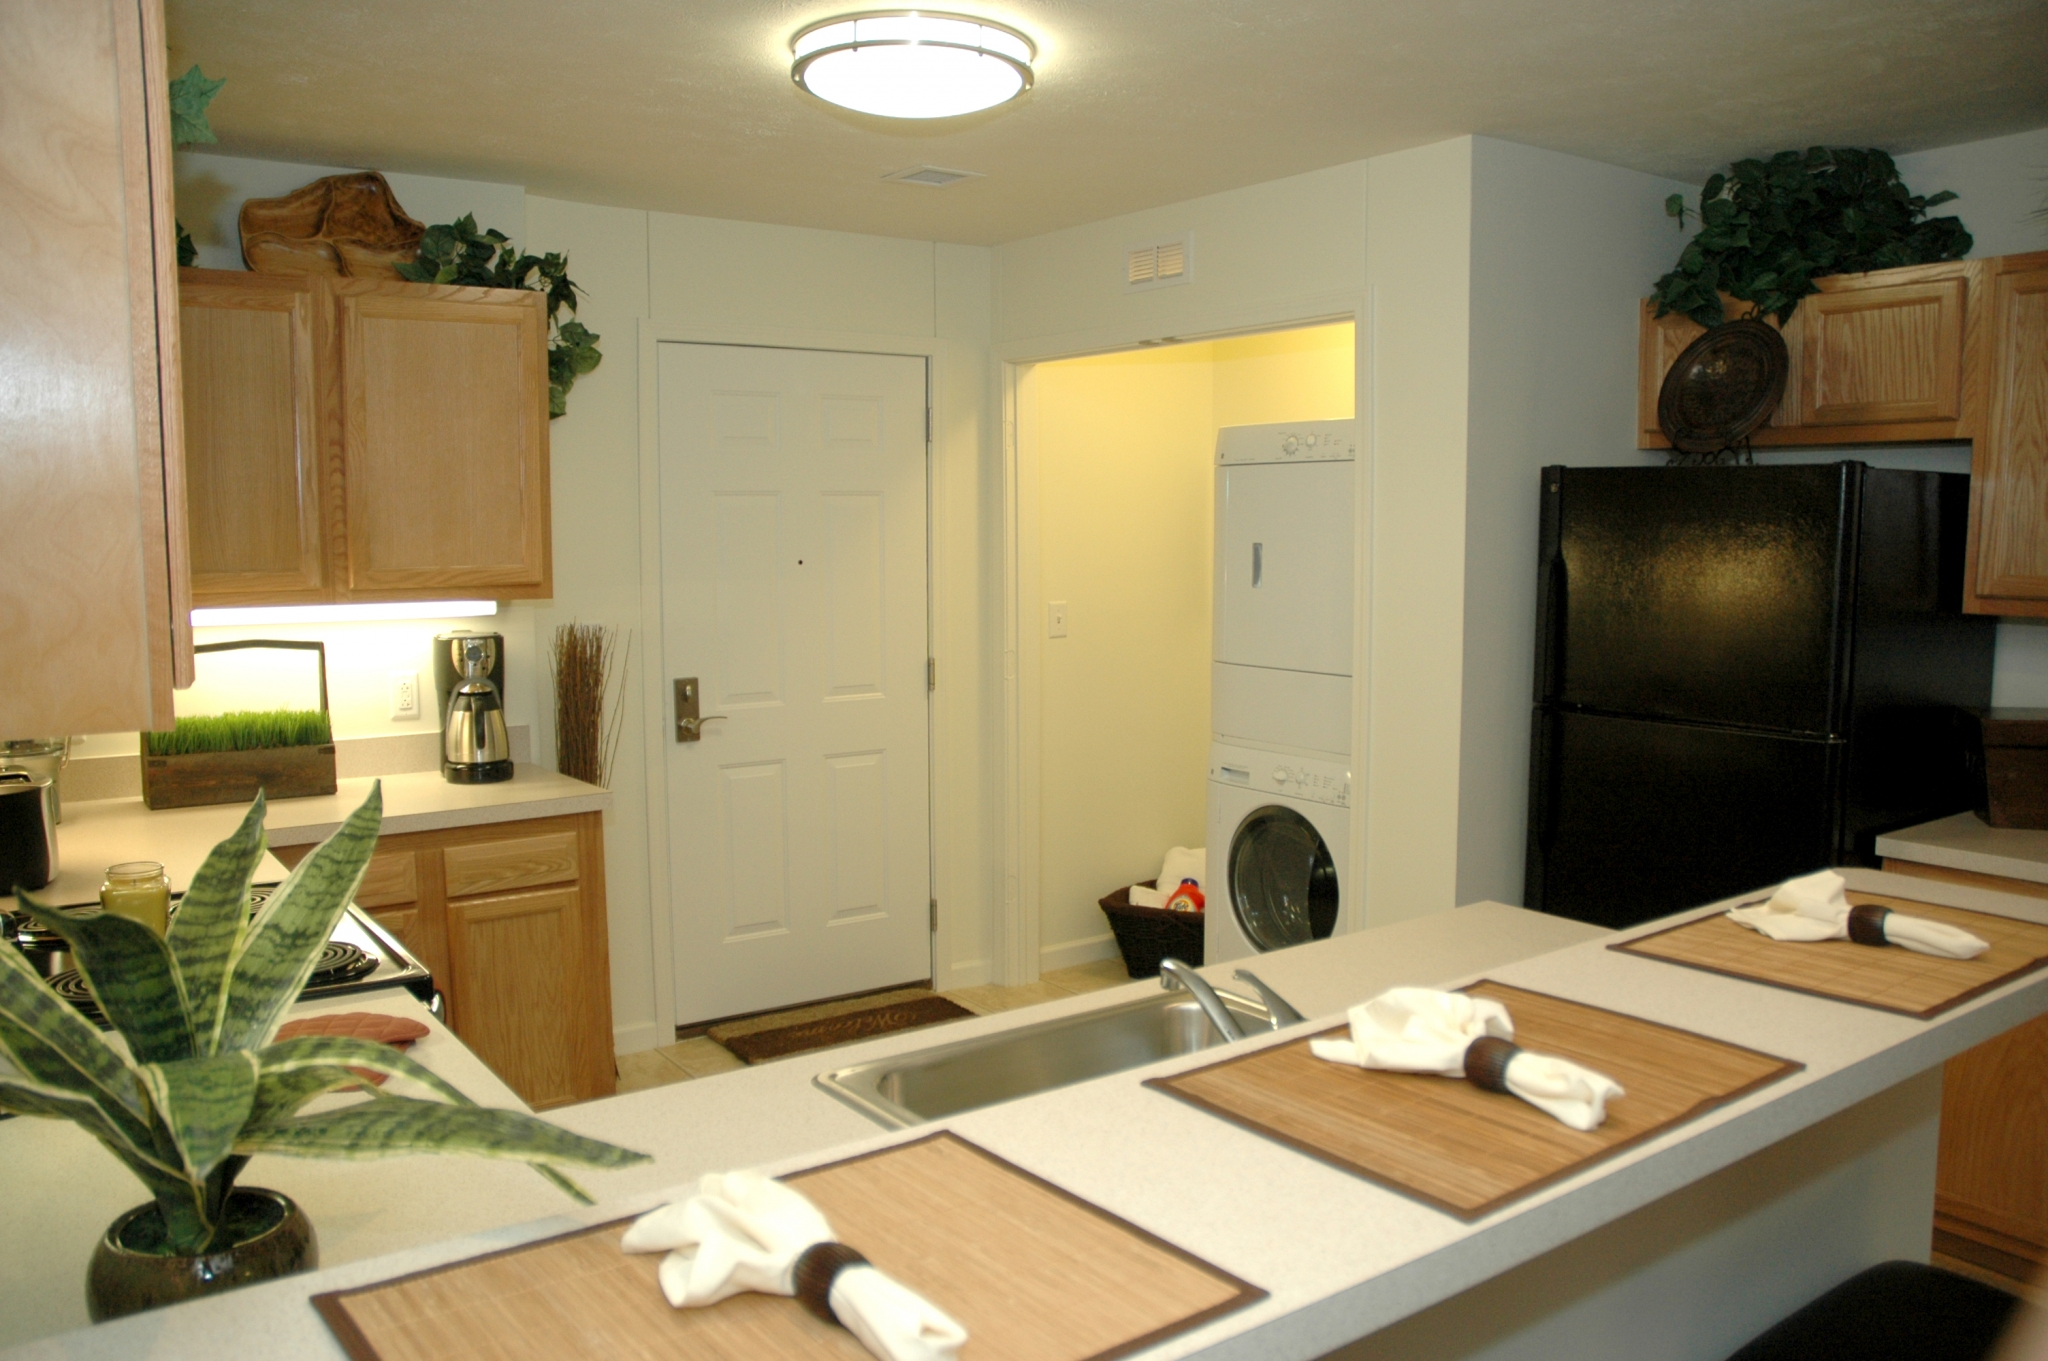 2 Bed 2 Bath Apartment in Fort Drum NY – Fort Drum Housing Floor Plans